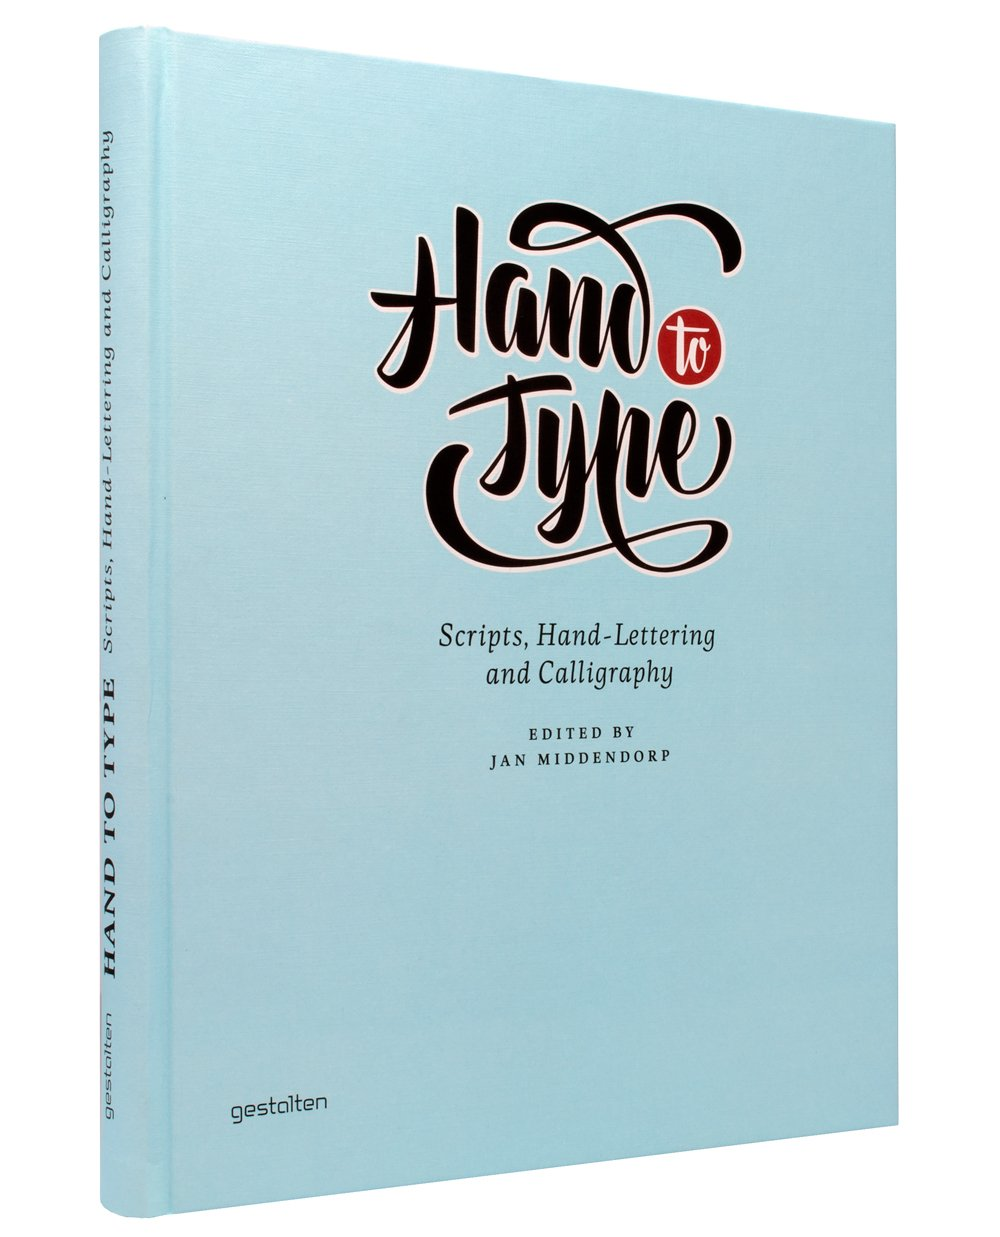 Hand to type : Scripts, Hand-Lettering and Calligraphy